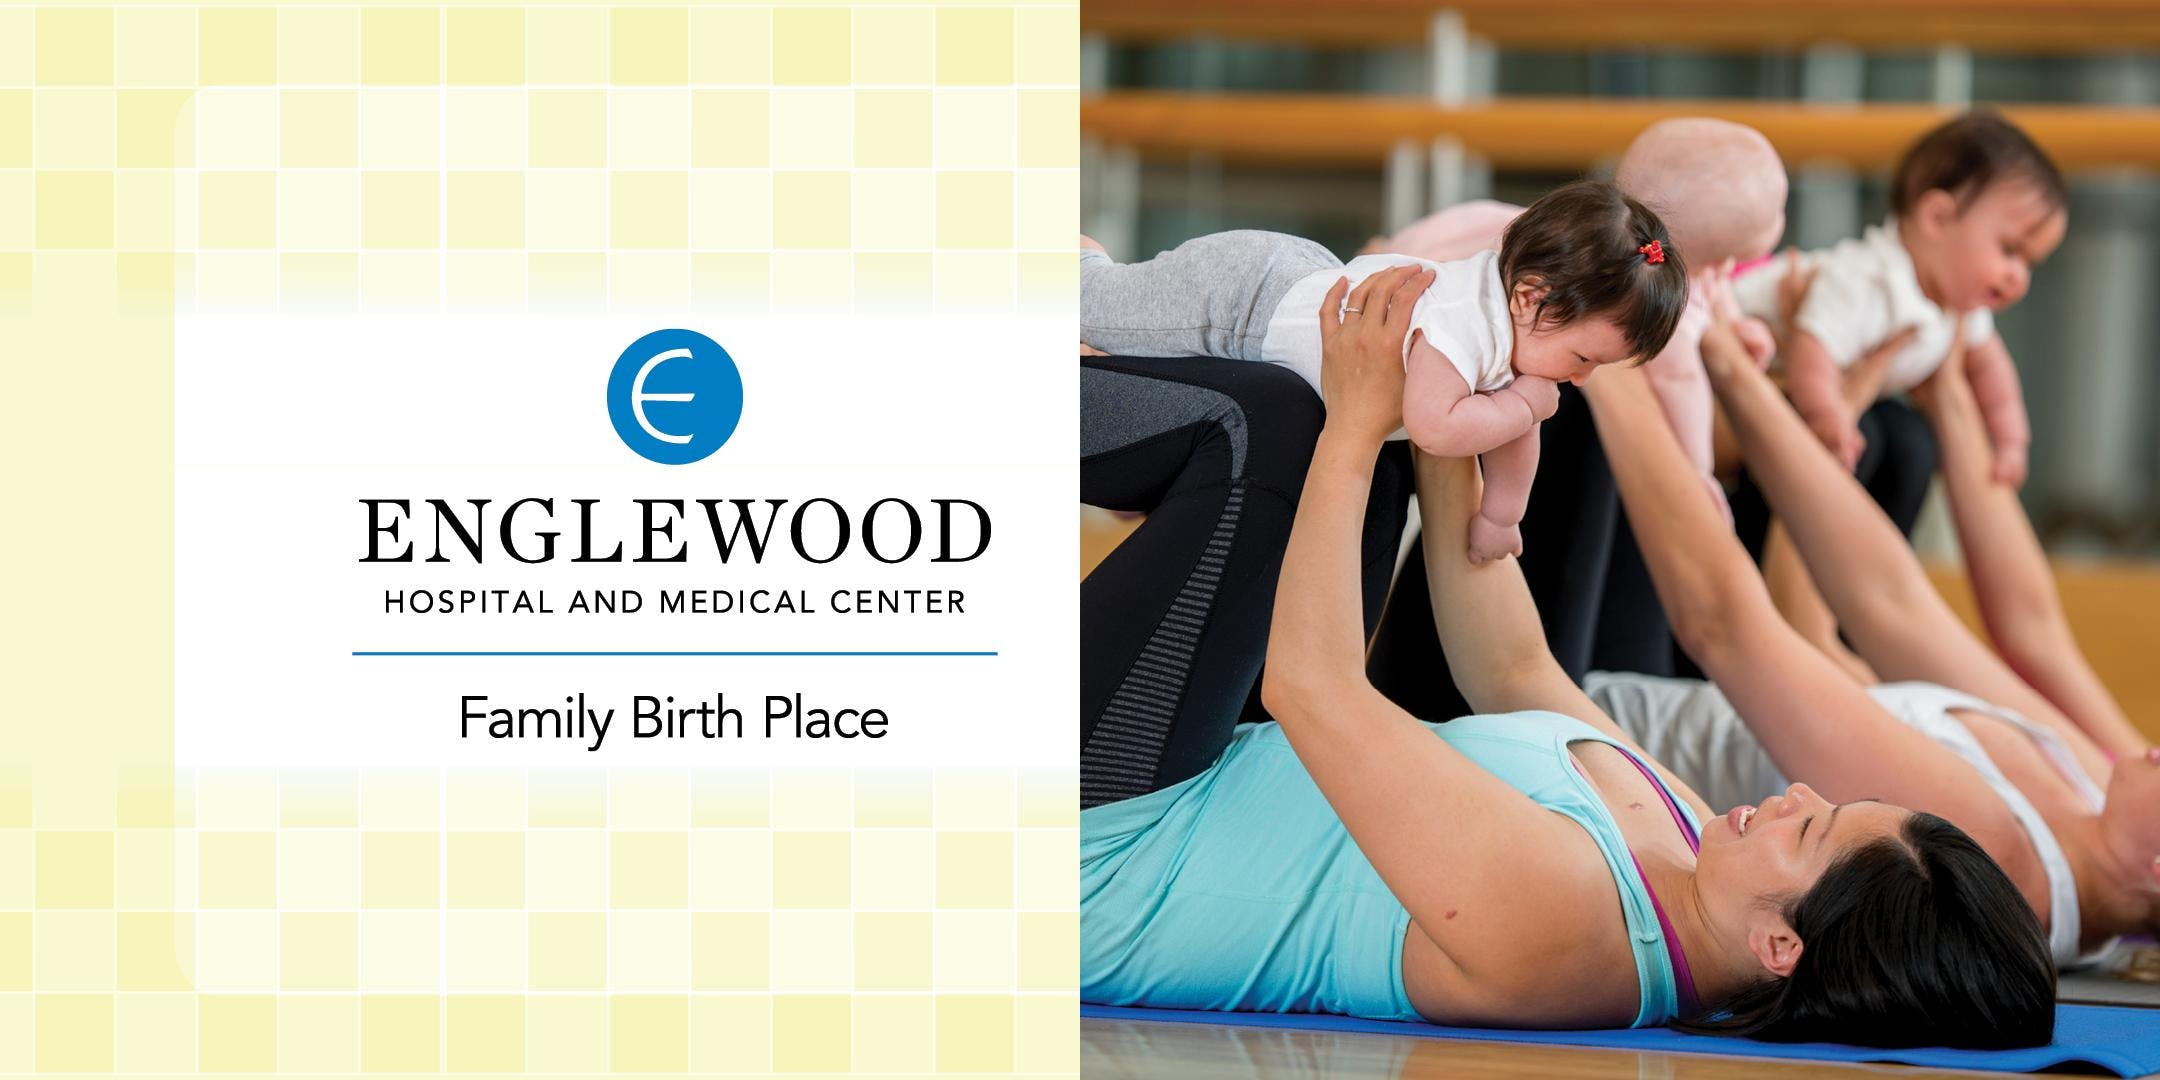 More info: Mommy and Me Postnatal Yoga Series (APRIL 26-MAY 31)